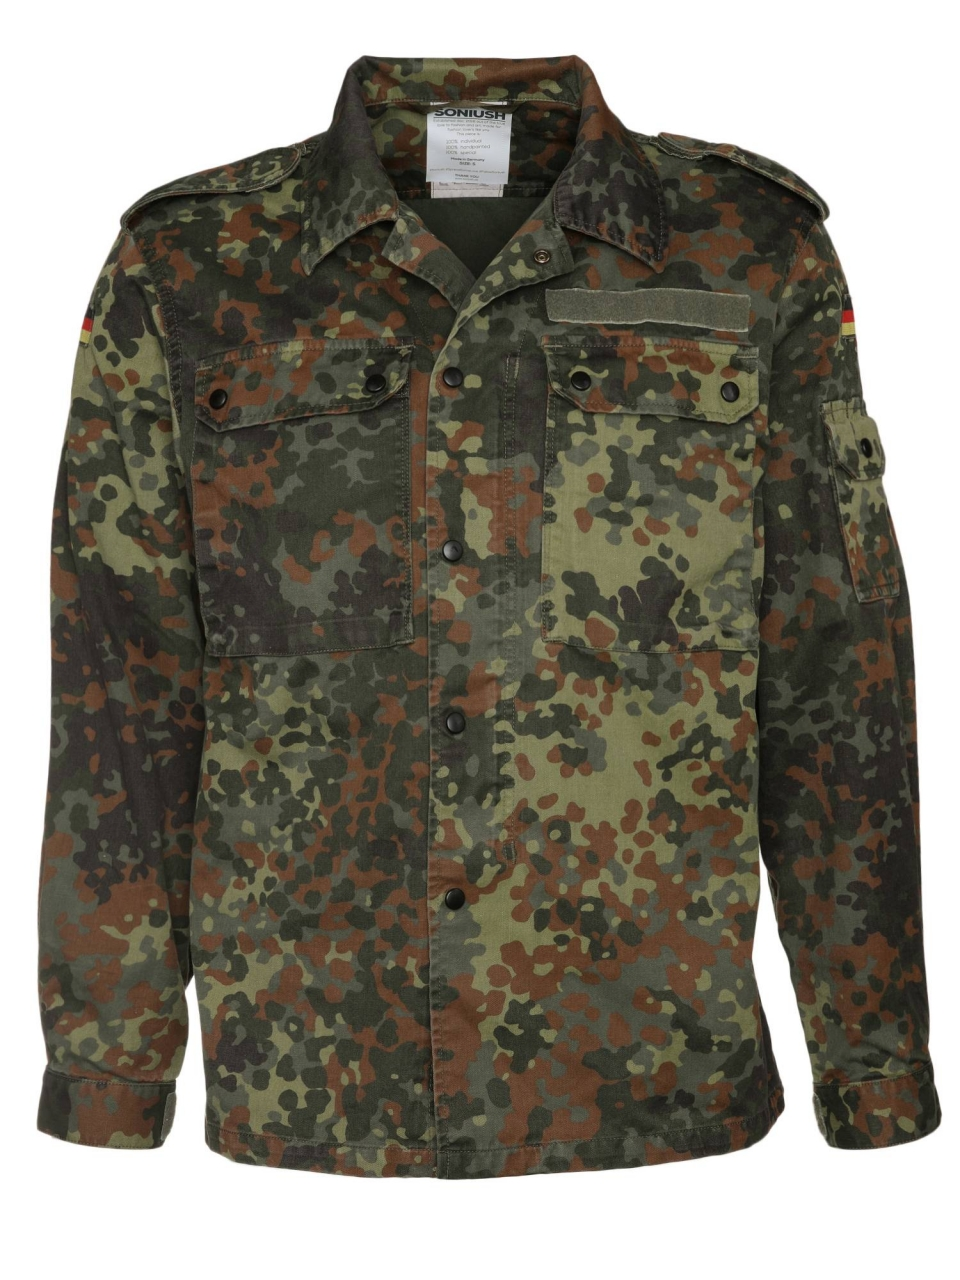 Soniush Jacke by Heart Camo Women